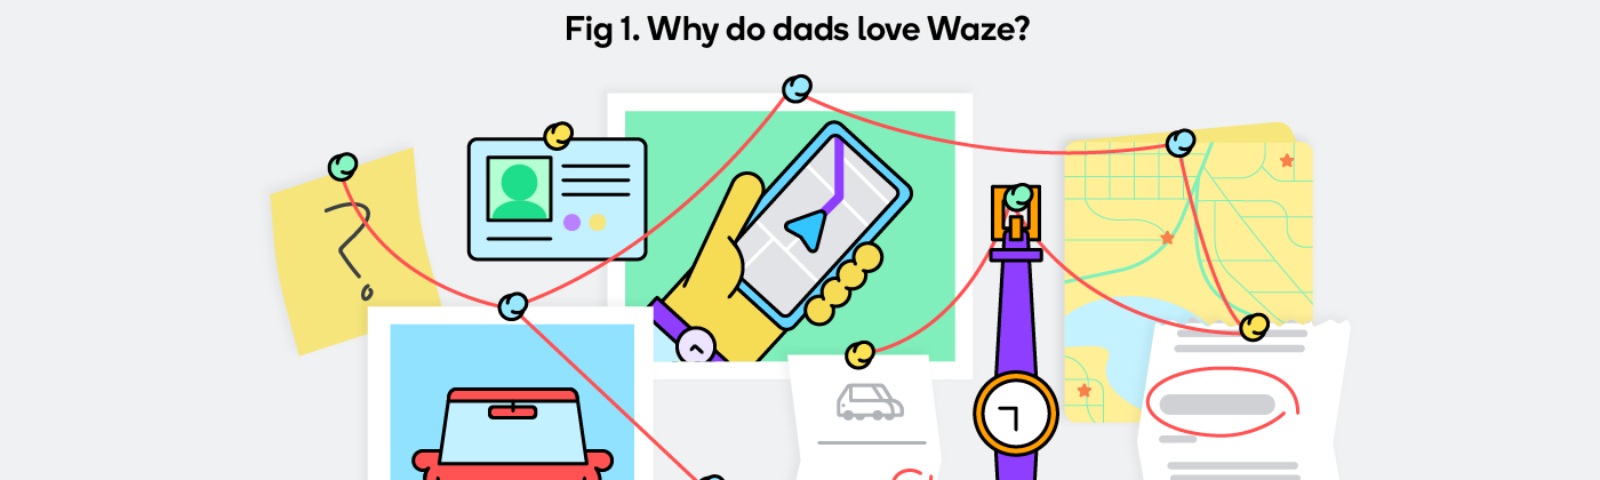 We did a formal investigation to find out why dads love Waze.